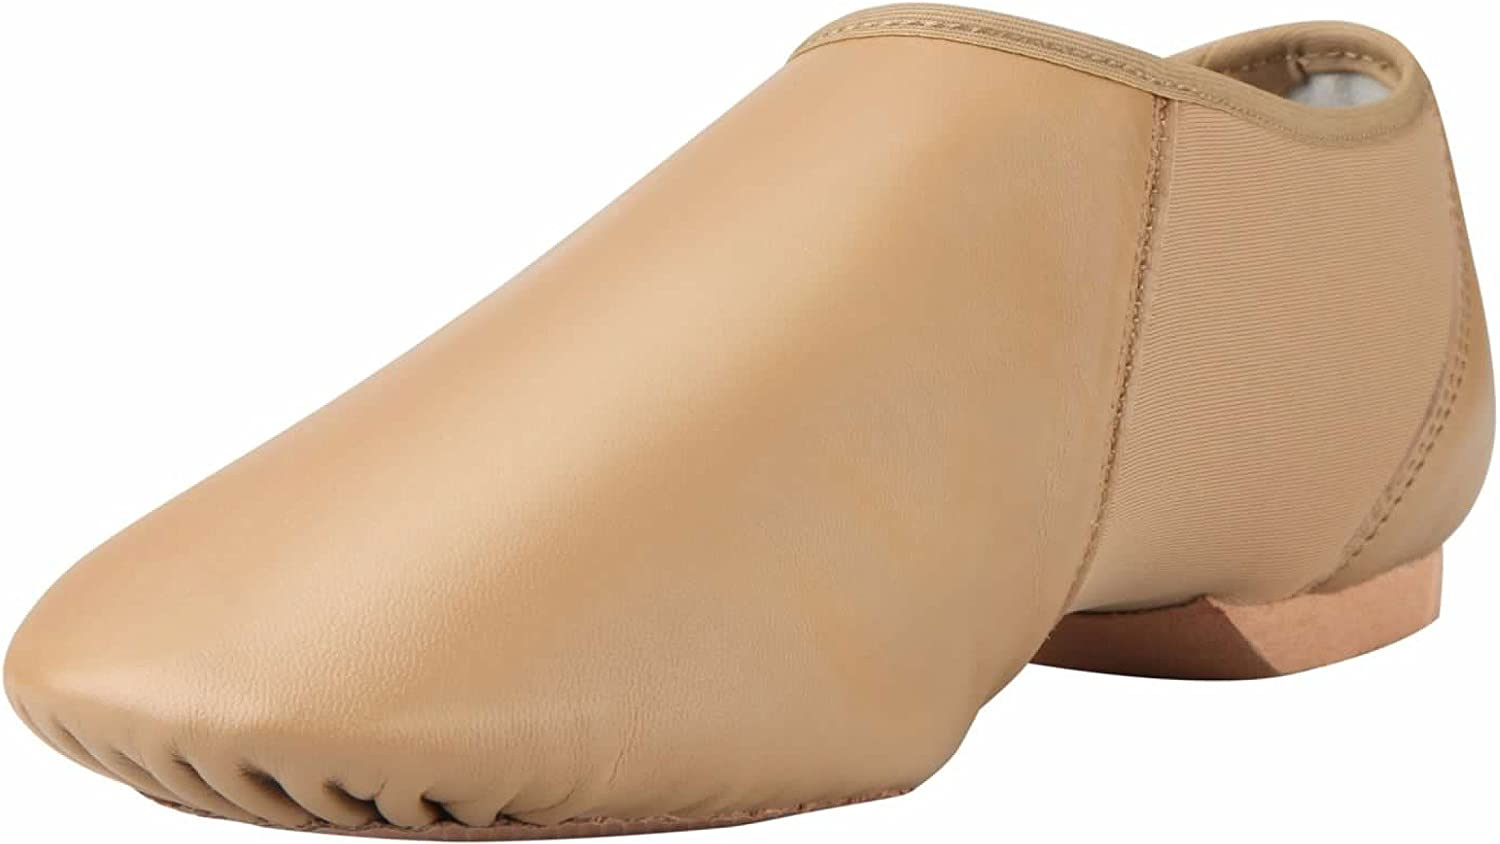 ARCLIBER Adults Brown Leather Jazz Dance shoes 7.5M US